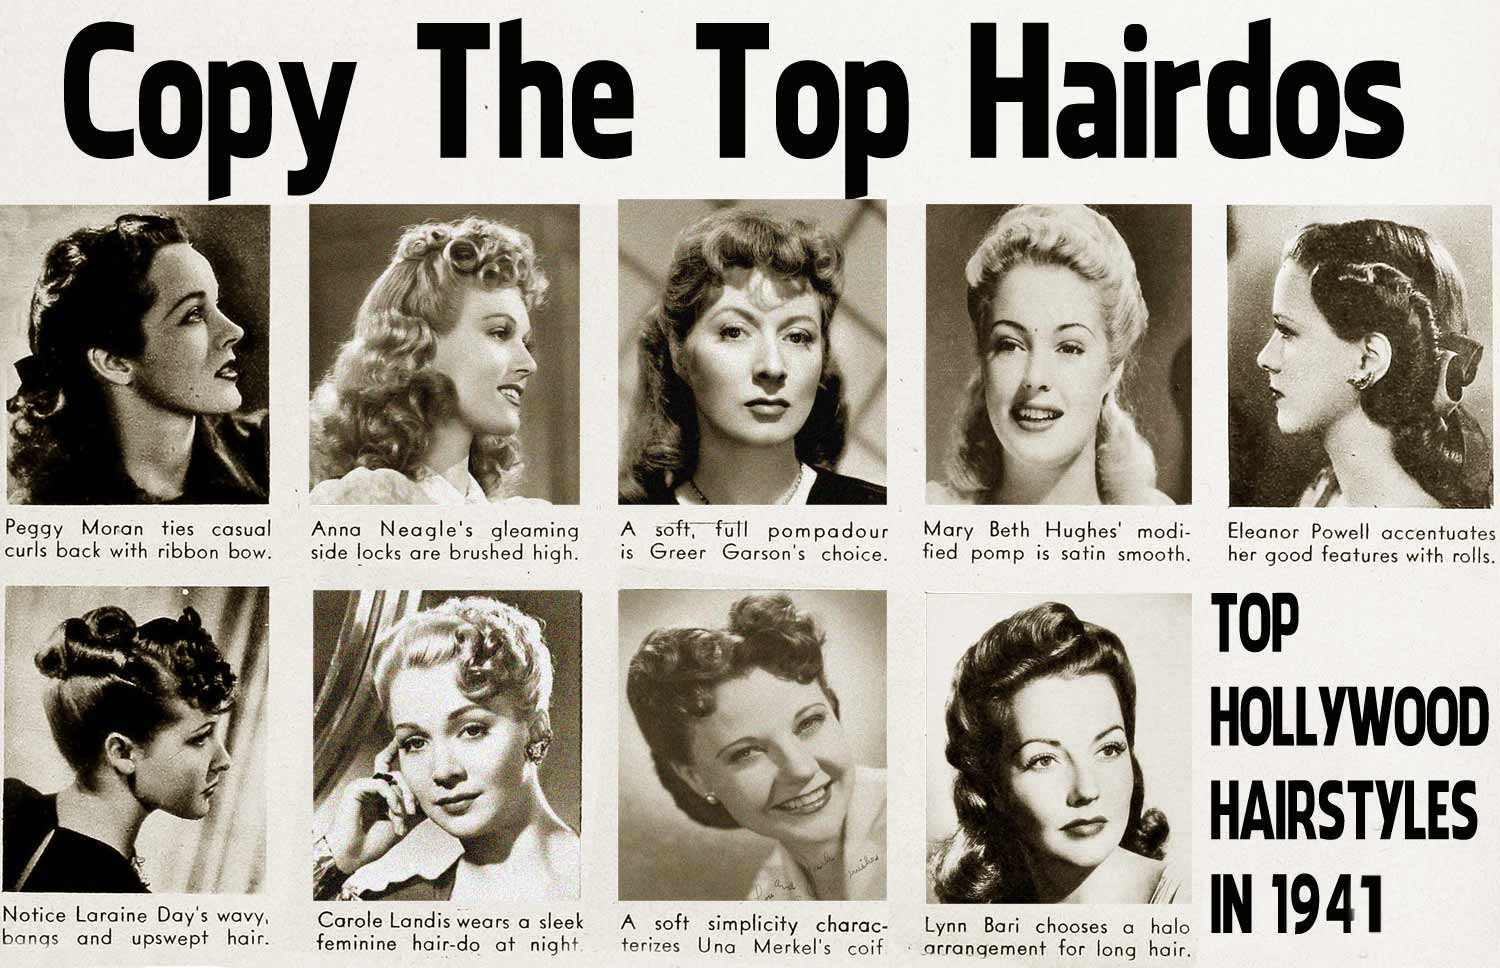 40s style hair 1940s hairstyle copy the top hairdos of 1941 daze 1937 | Top Hollywood Hairstyle Looks for 1941